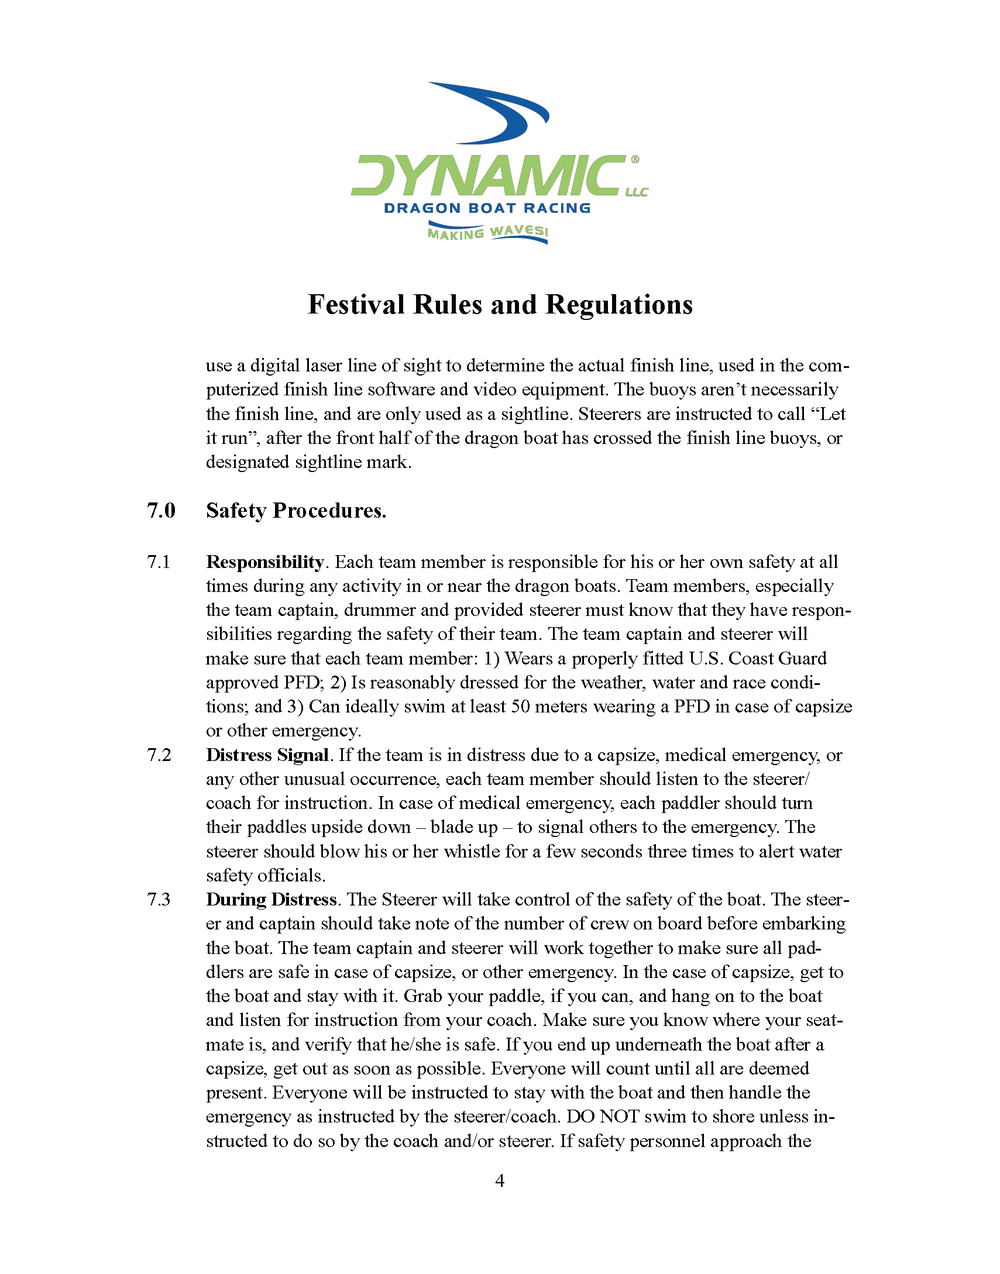 Dynamic_Festival_RulesRegulations_2019_Page_04.png